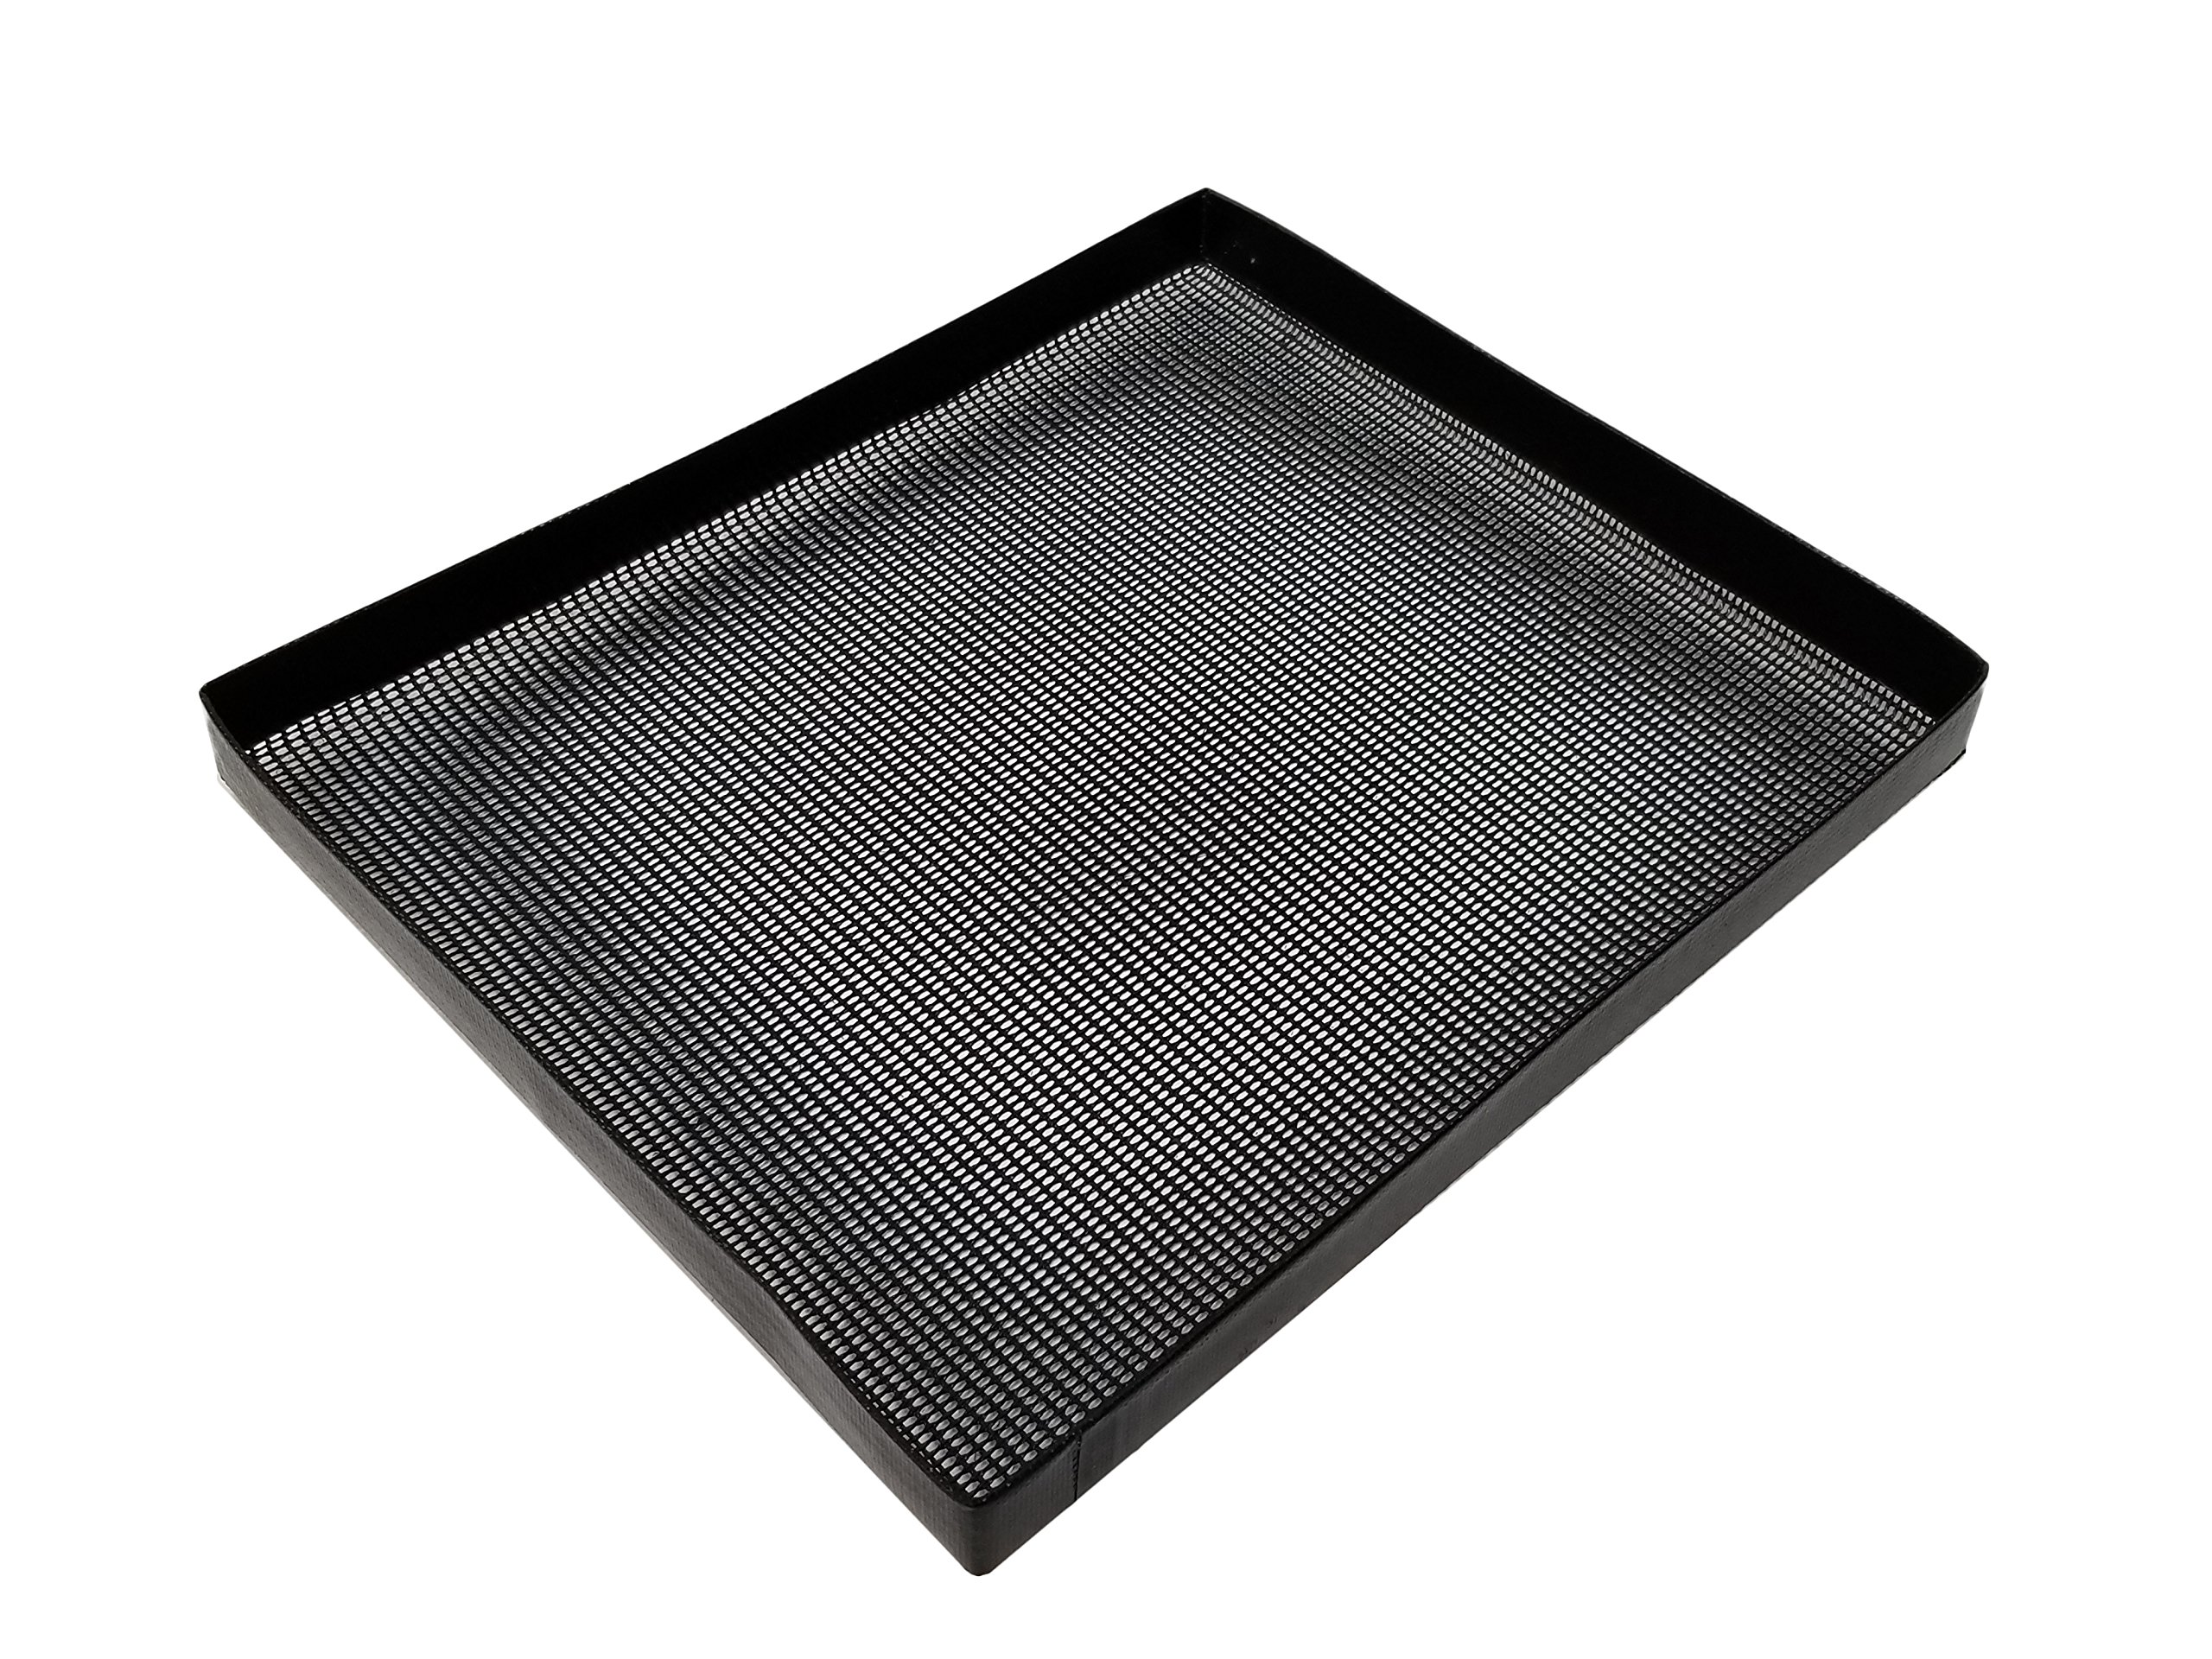 10'' x 12'' PTFE Fine Mesh Oven basket for Turbo Chef, Merrychef, and Amana (Replaces TB10)